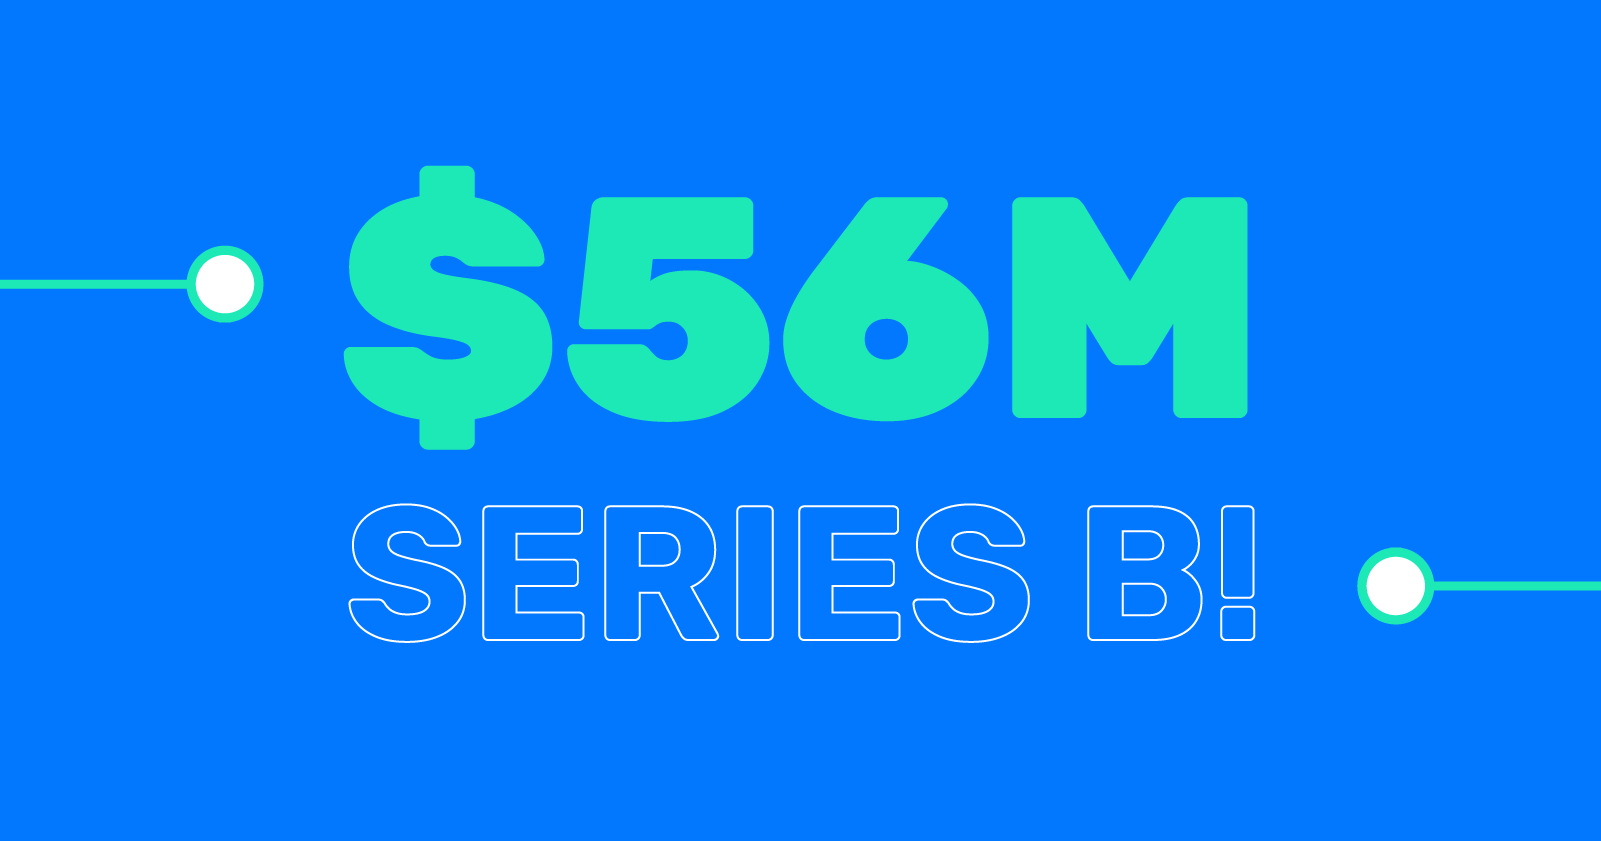 Our Series B funding: Accelerating our mission to bring financial wellness to everyone, everywhere